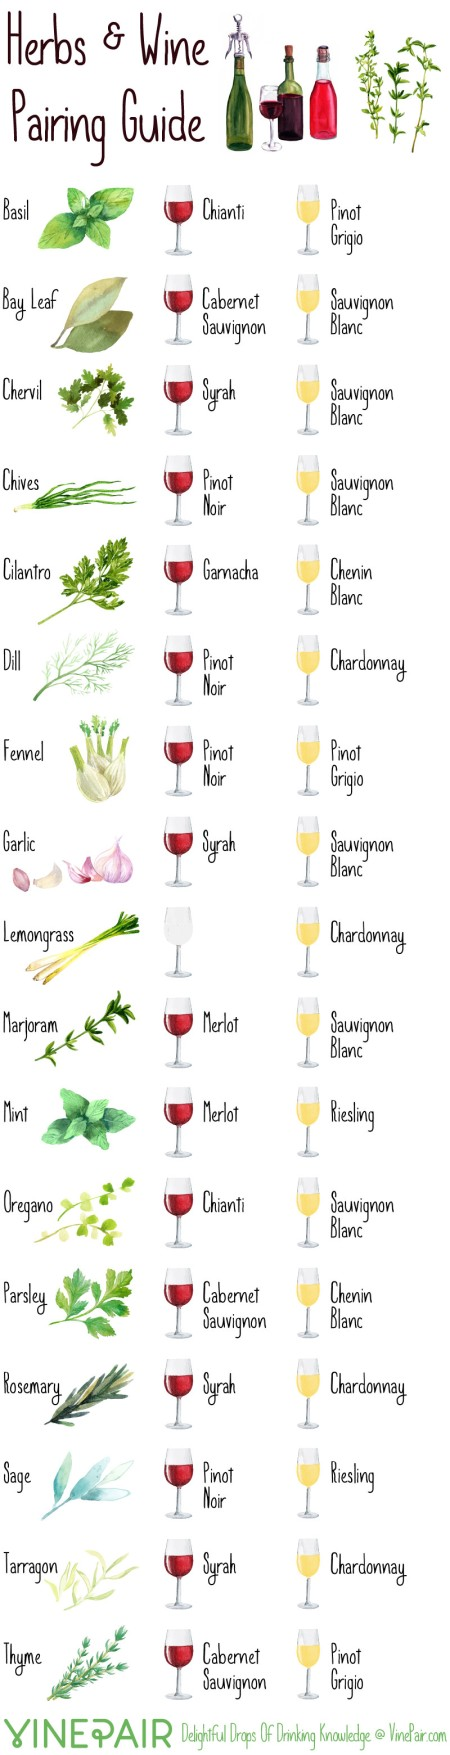 2-herbs-wine-pairing-guide-Franklin-liquors